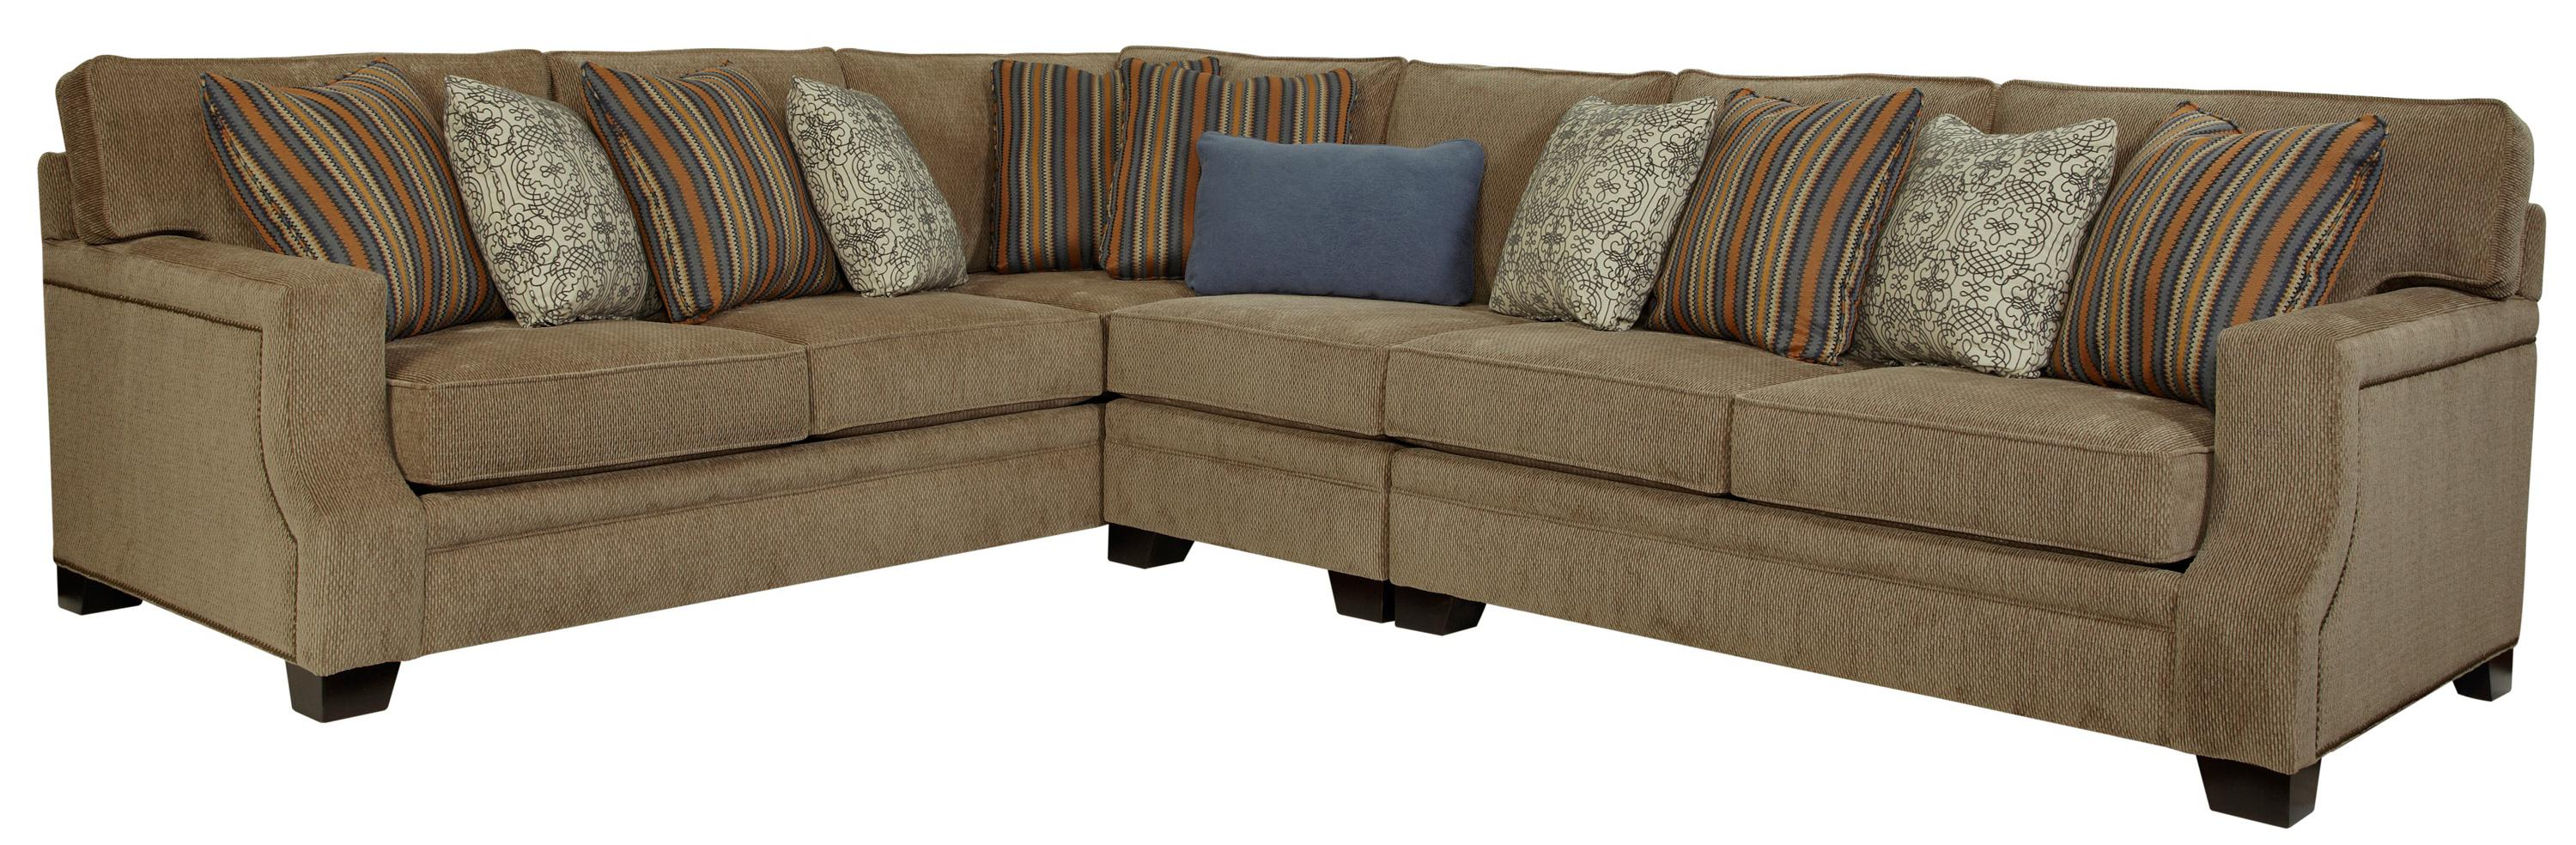 High Quality Broyhill Furniture Kayley 3 Piece Right Facing Sectional   AHFA   Sofa  Sectional Dealer Locator